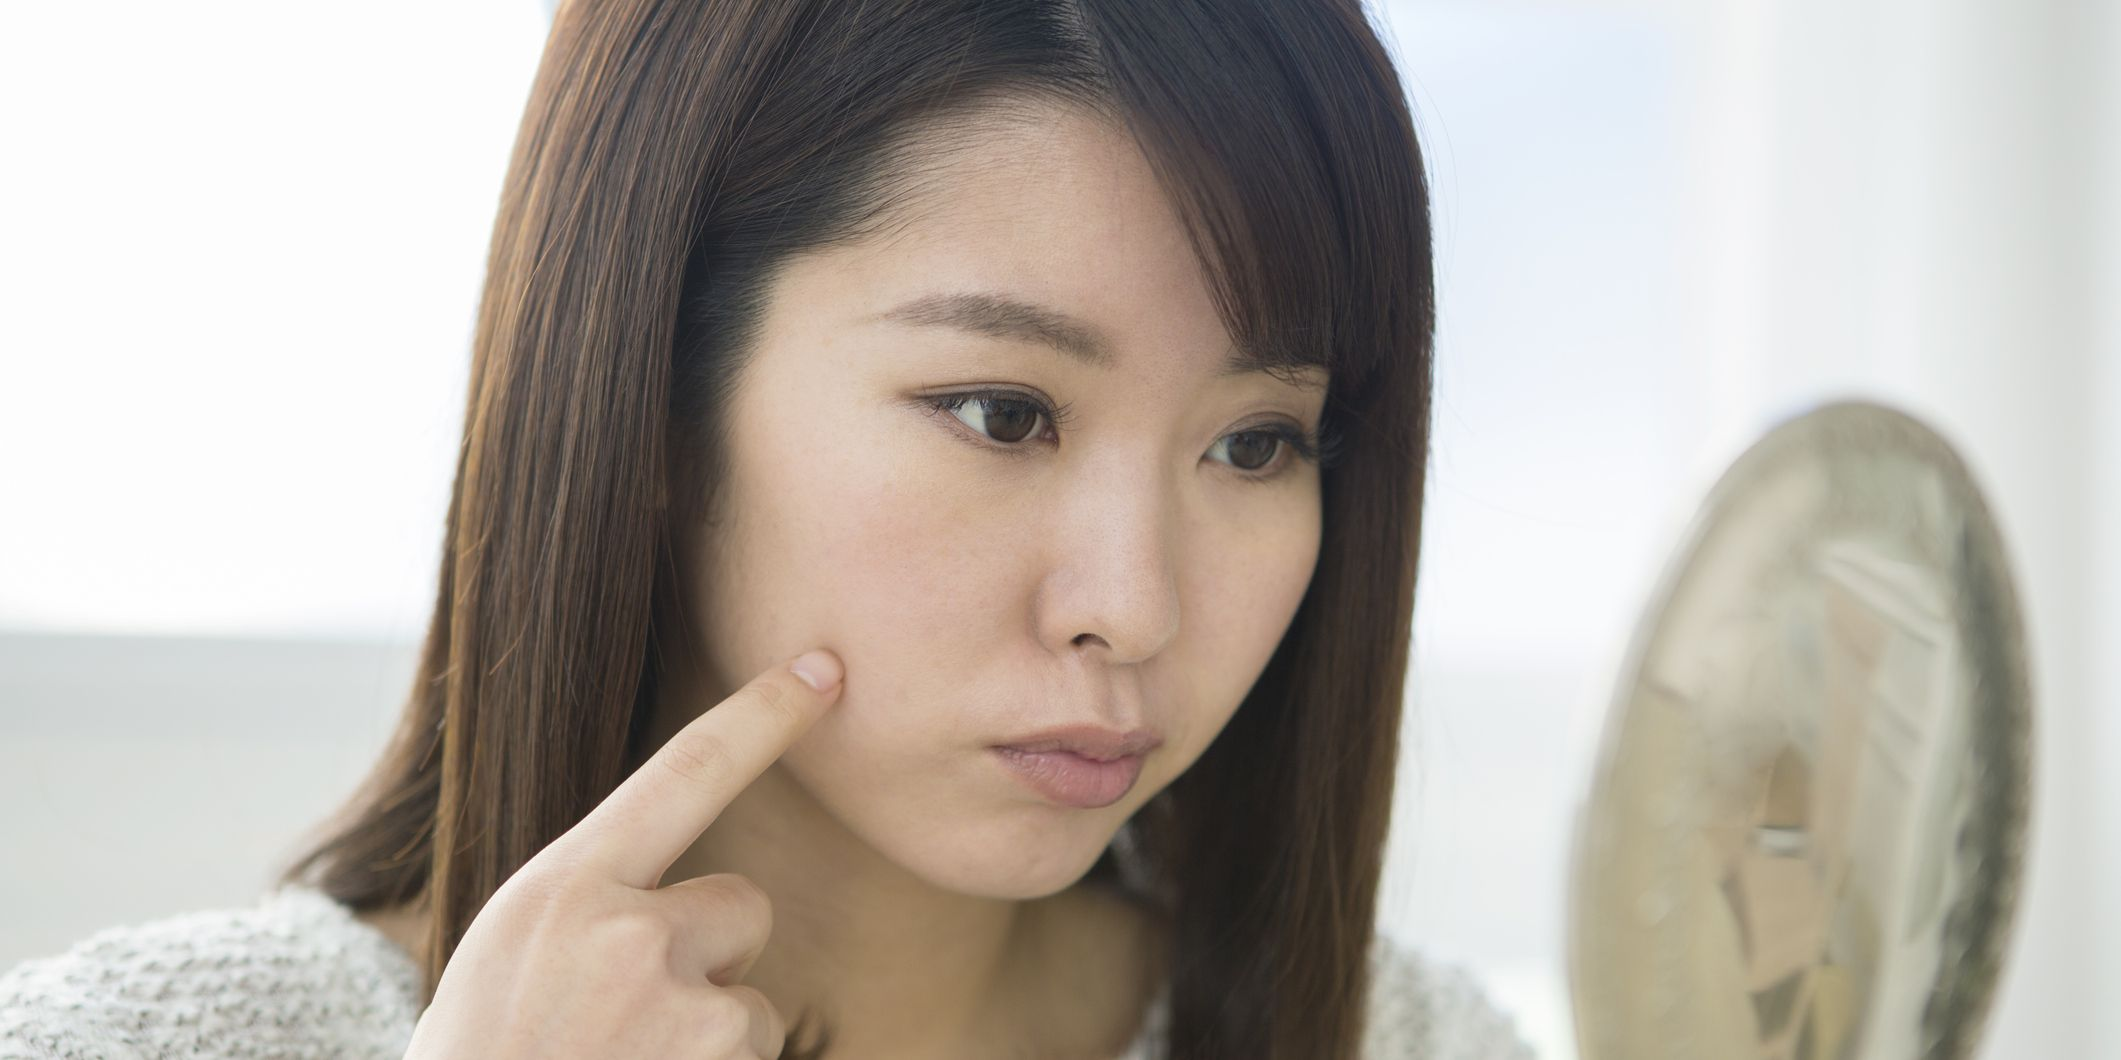 5 things you need to know about shrinking your pores